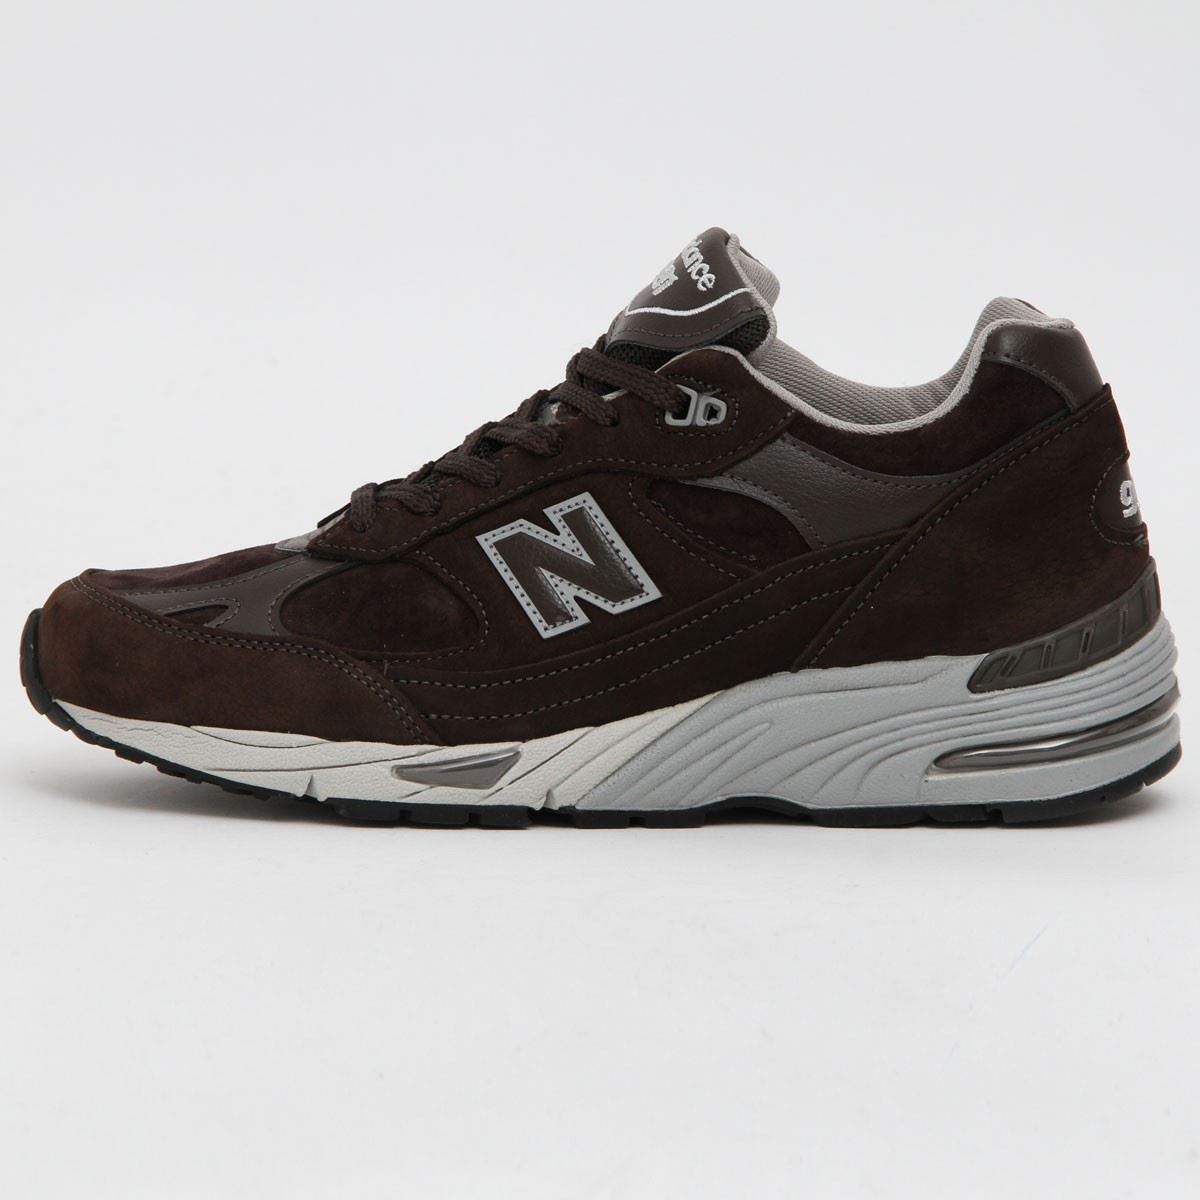 new balance 991 full leather